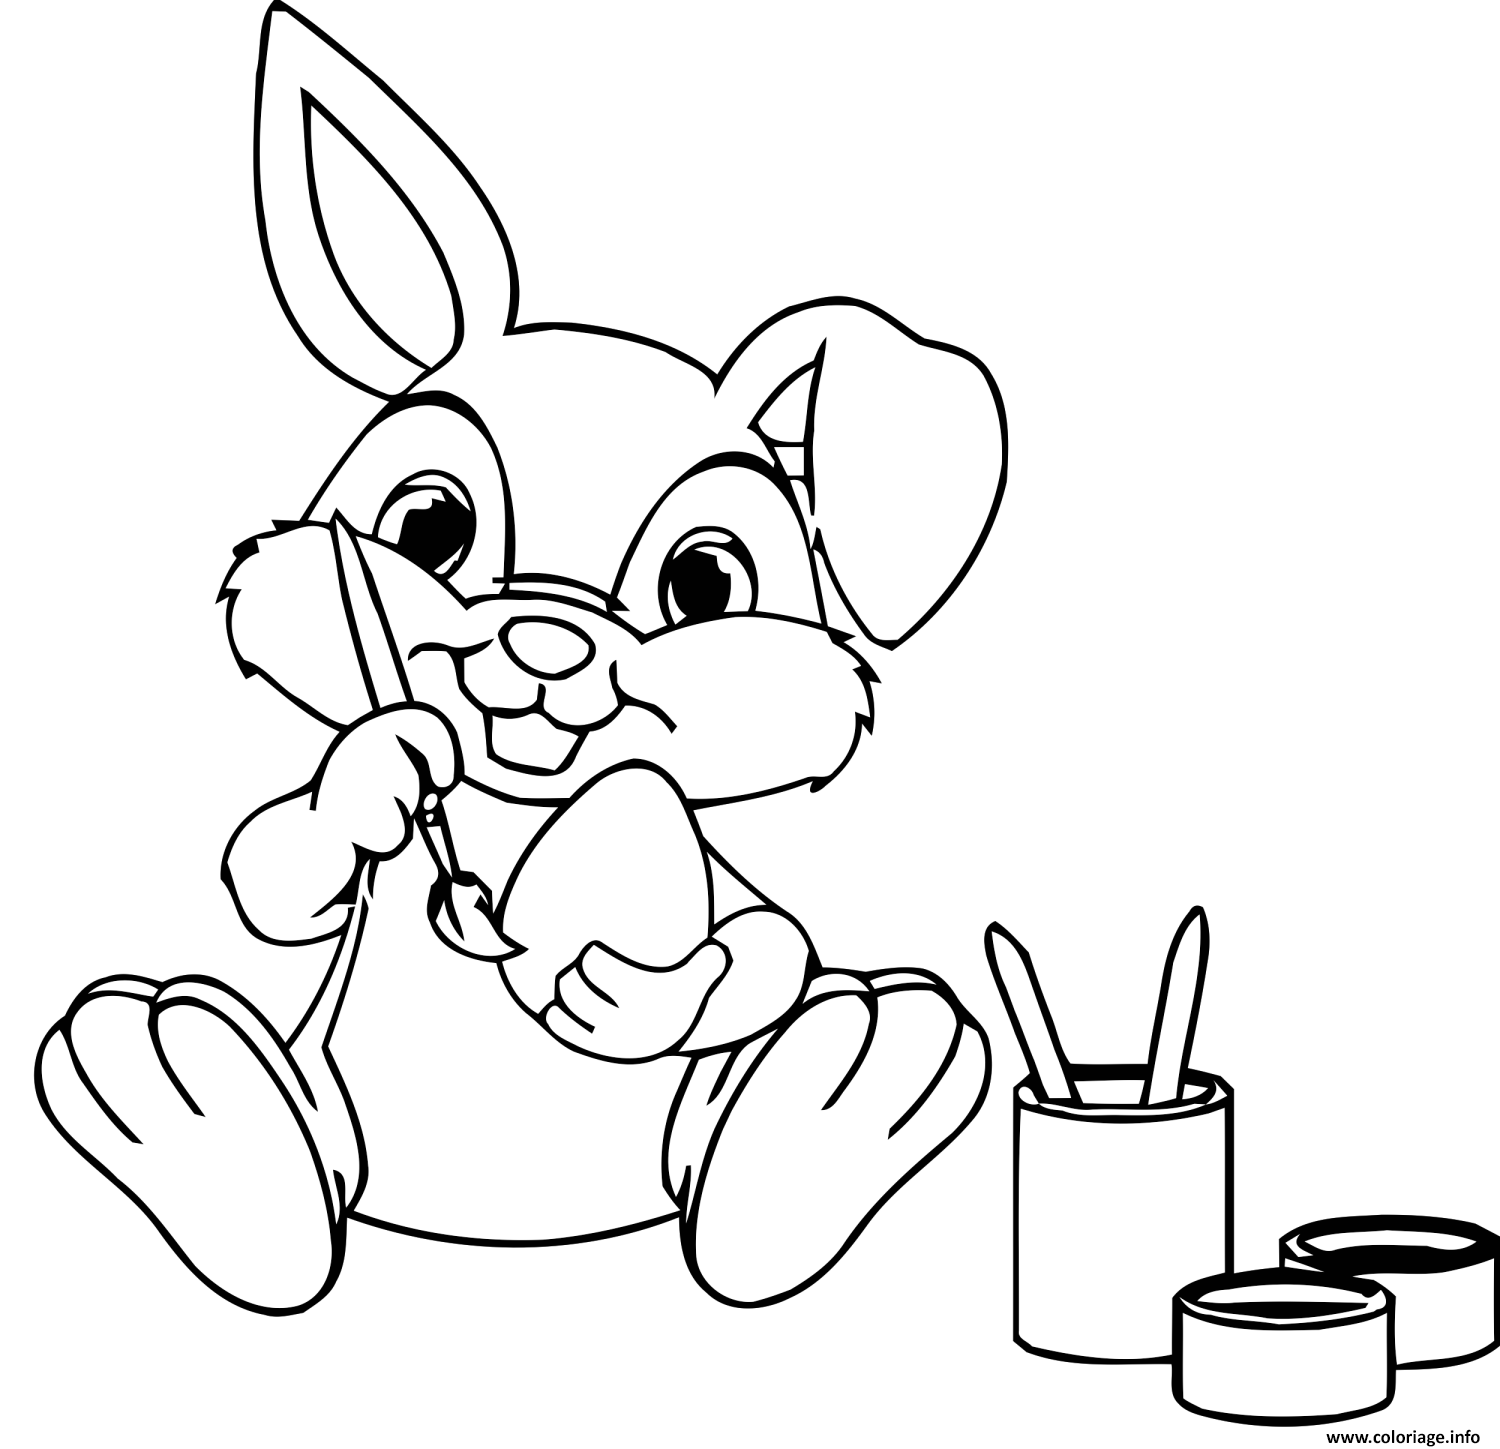 coloriage lapin peinture des oeufs dessin. Black Bedroom Furniture Sets. Home Design Ideas